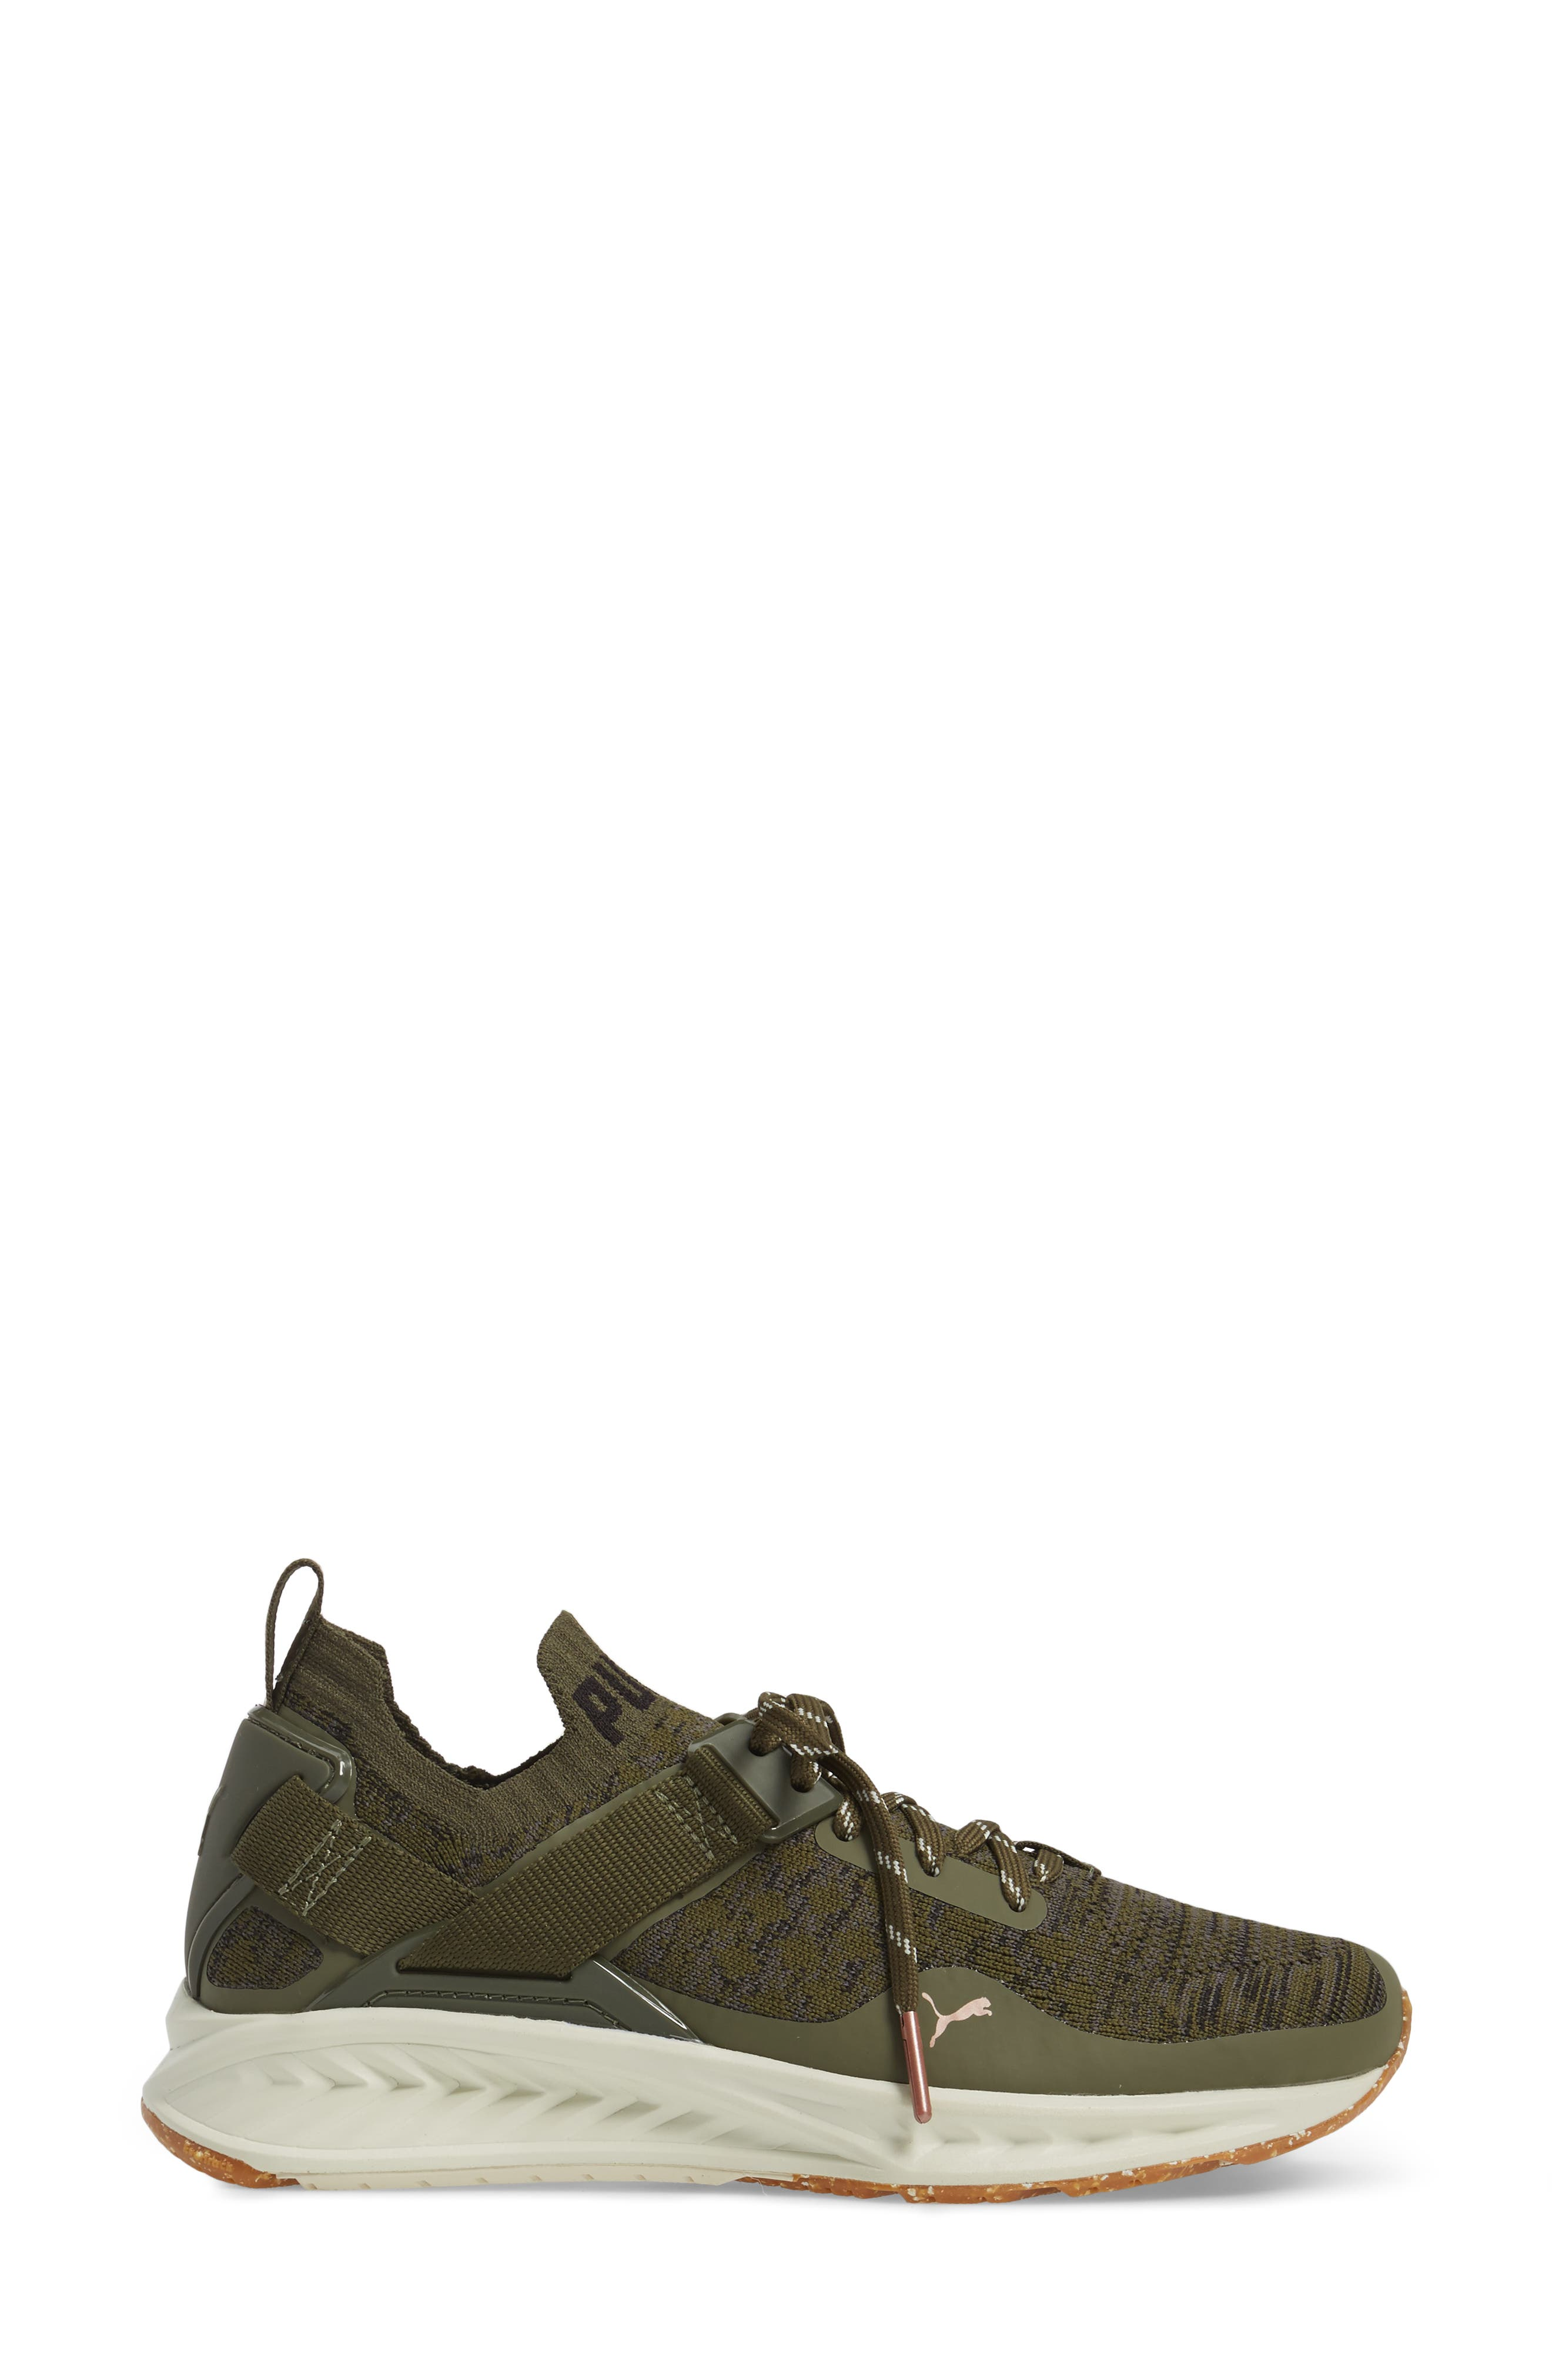 IGNITE evoKNIT Low Sneaker,                             Alternate thumbnail 3, color,                             Olive/ Black/ Quiet Shade